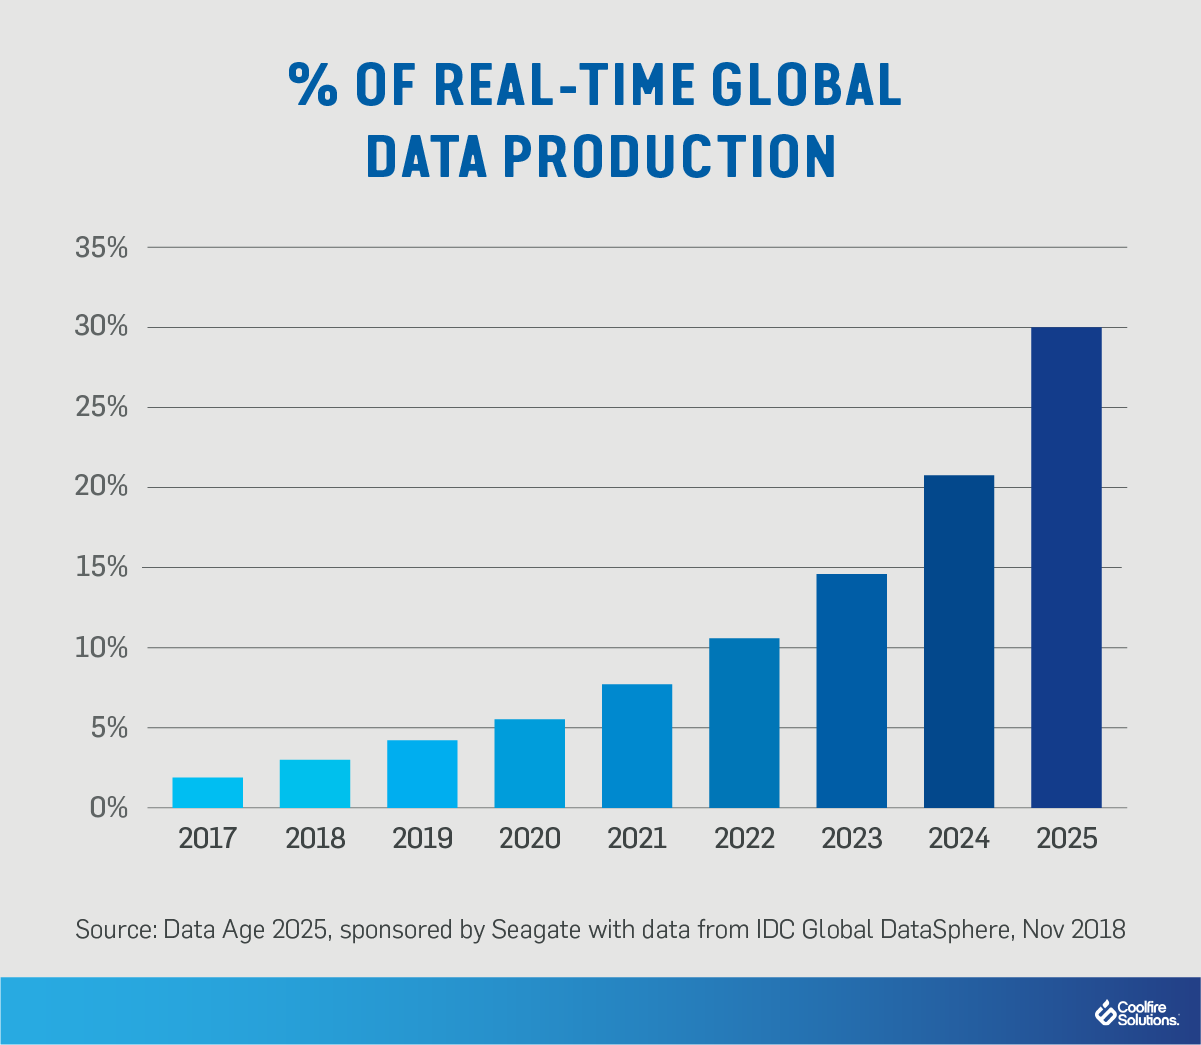 Real-time-global data production